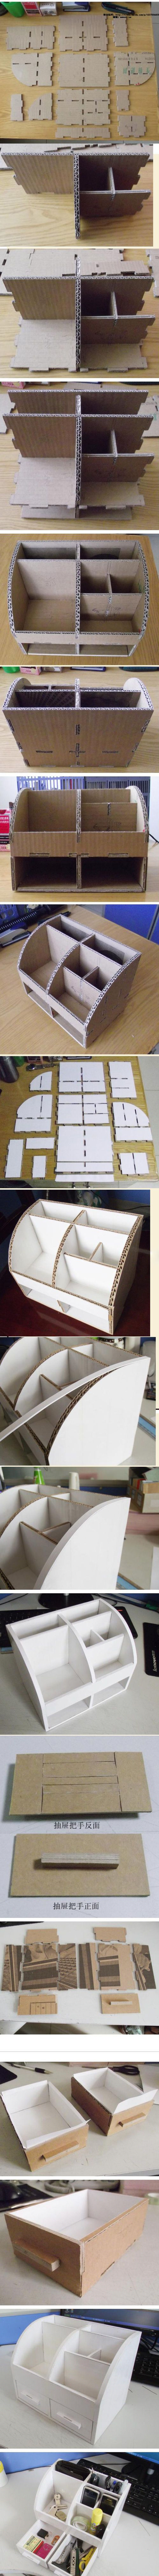 DIY Carton Office Stationery Box DIY Projects / UsefulDIY.com